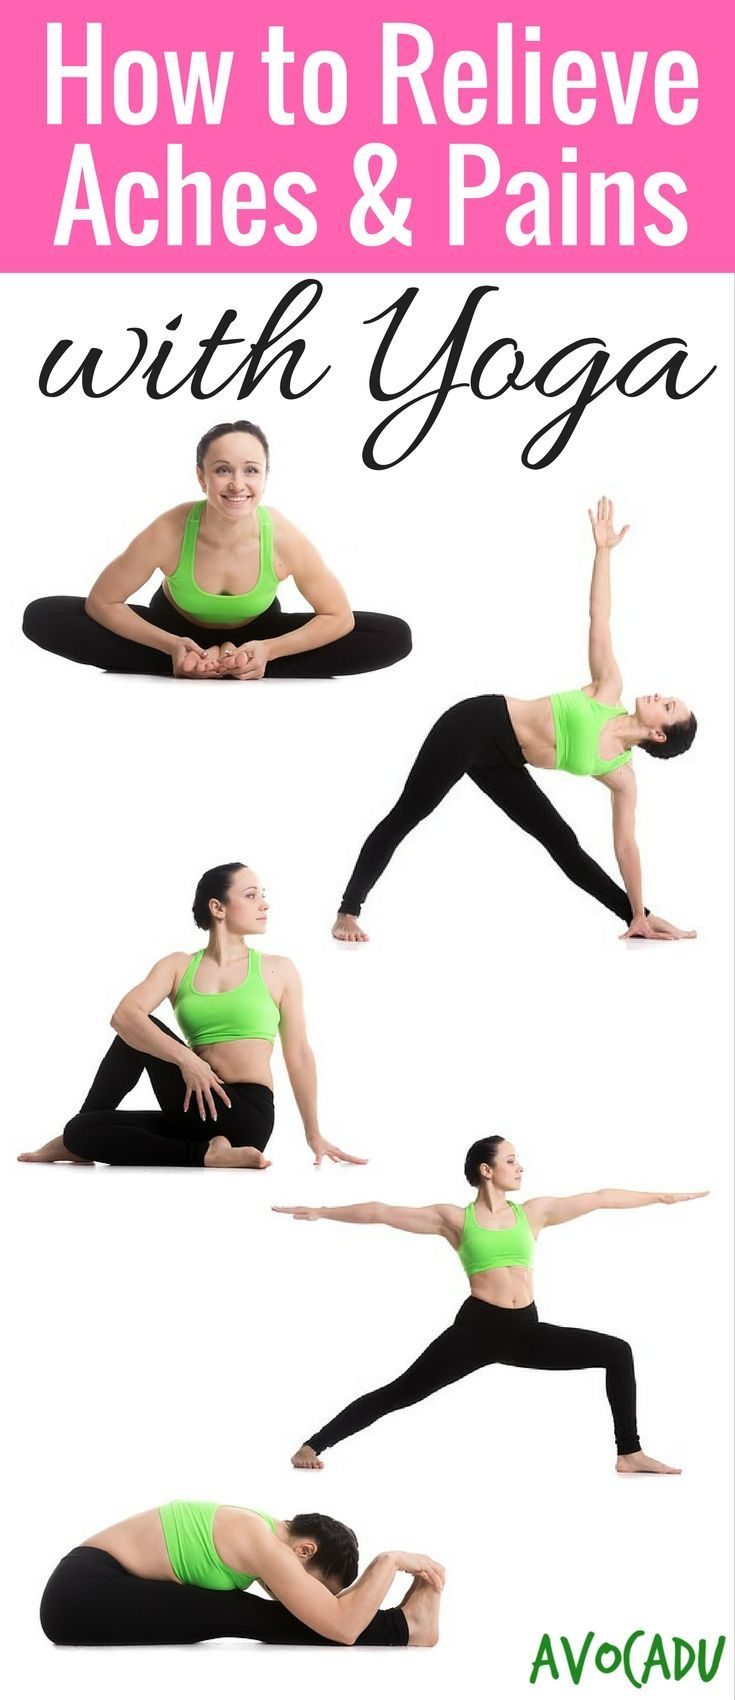 How to Relieve Aches and Pains with Yoga | Yoga Workout for Aches and Pains | Yo...